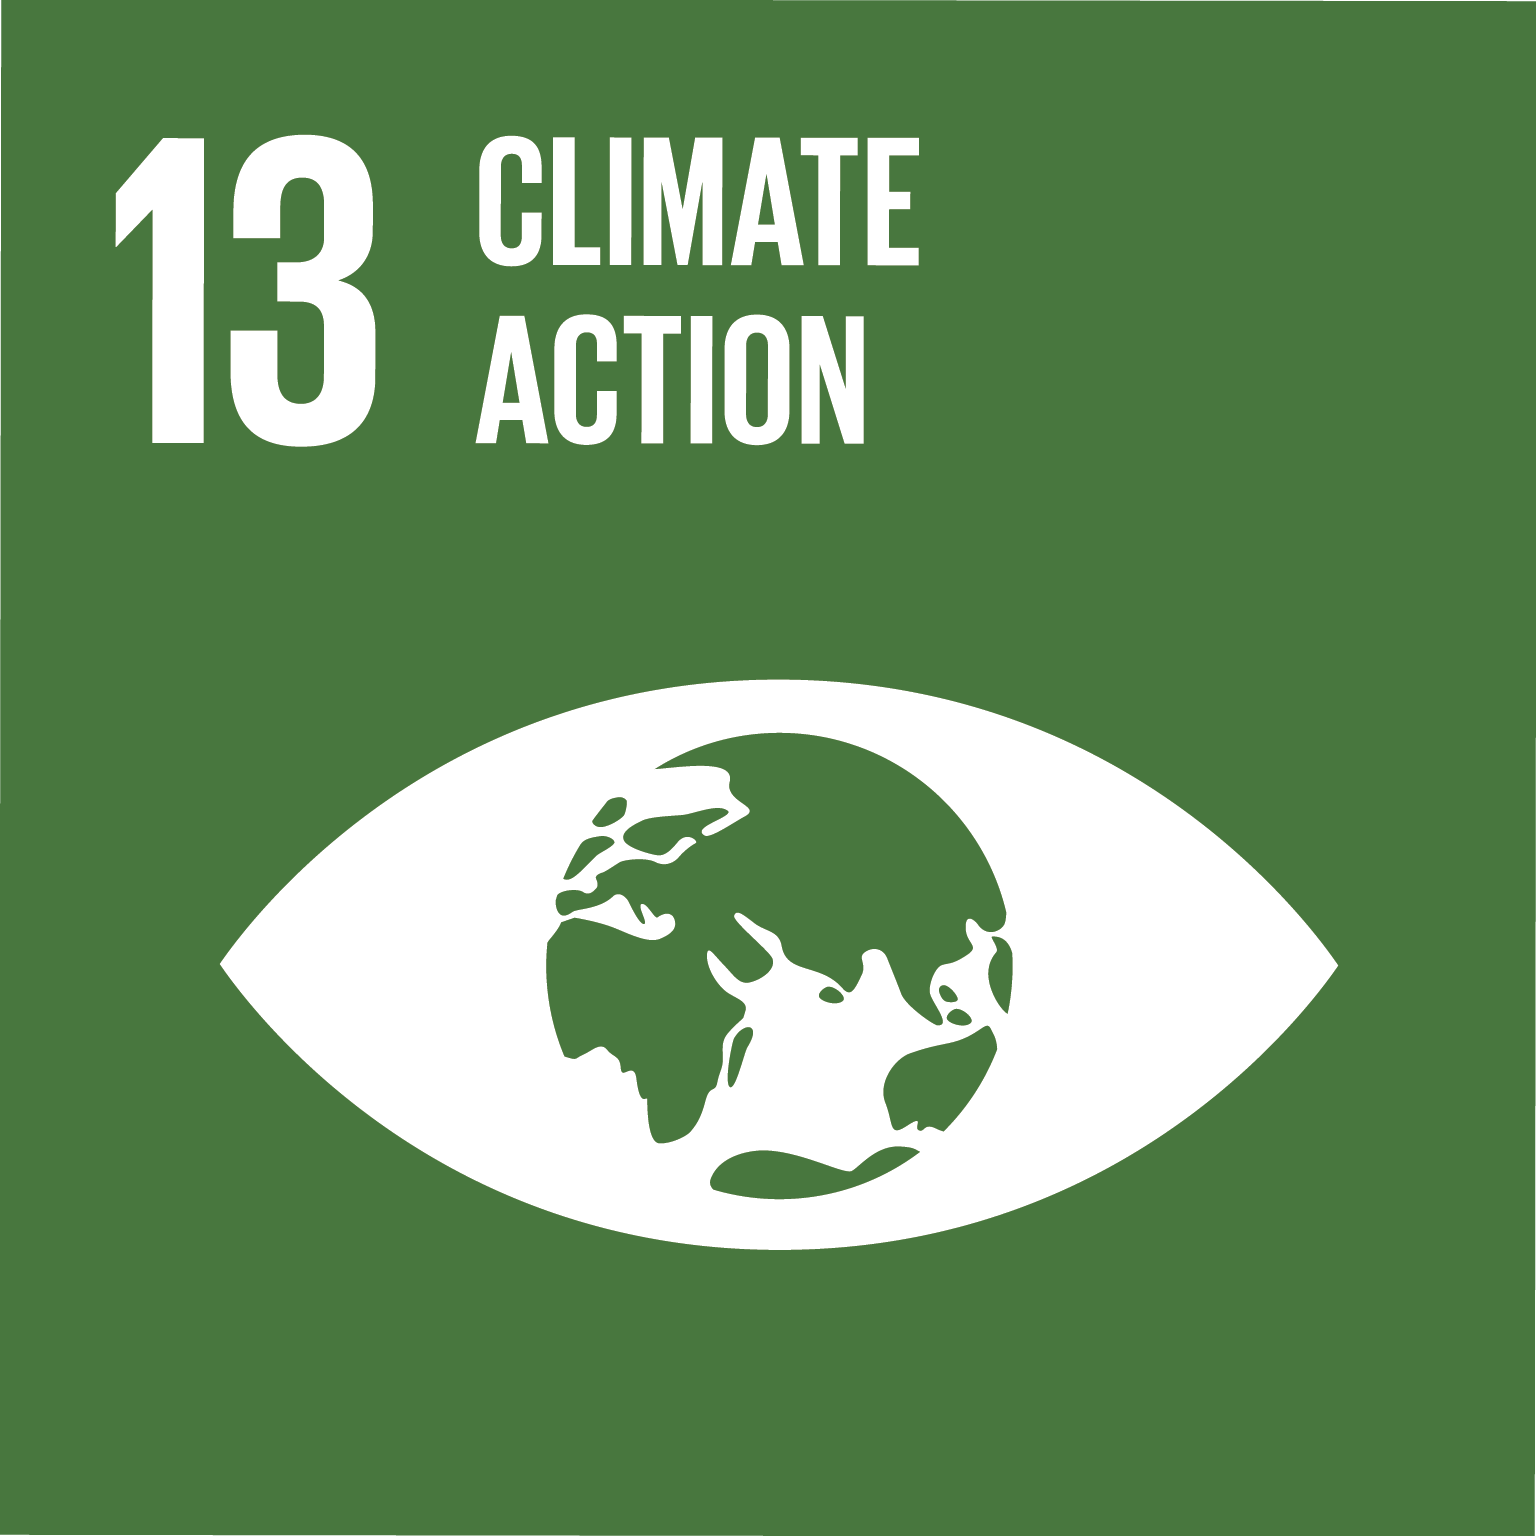 Afbeeldingsresultaat voor sustainable development goals 13